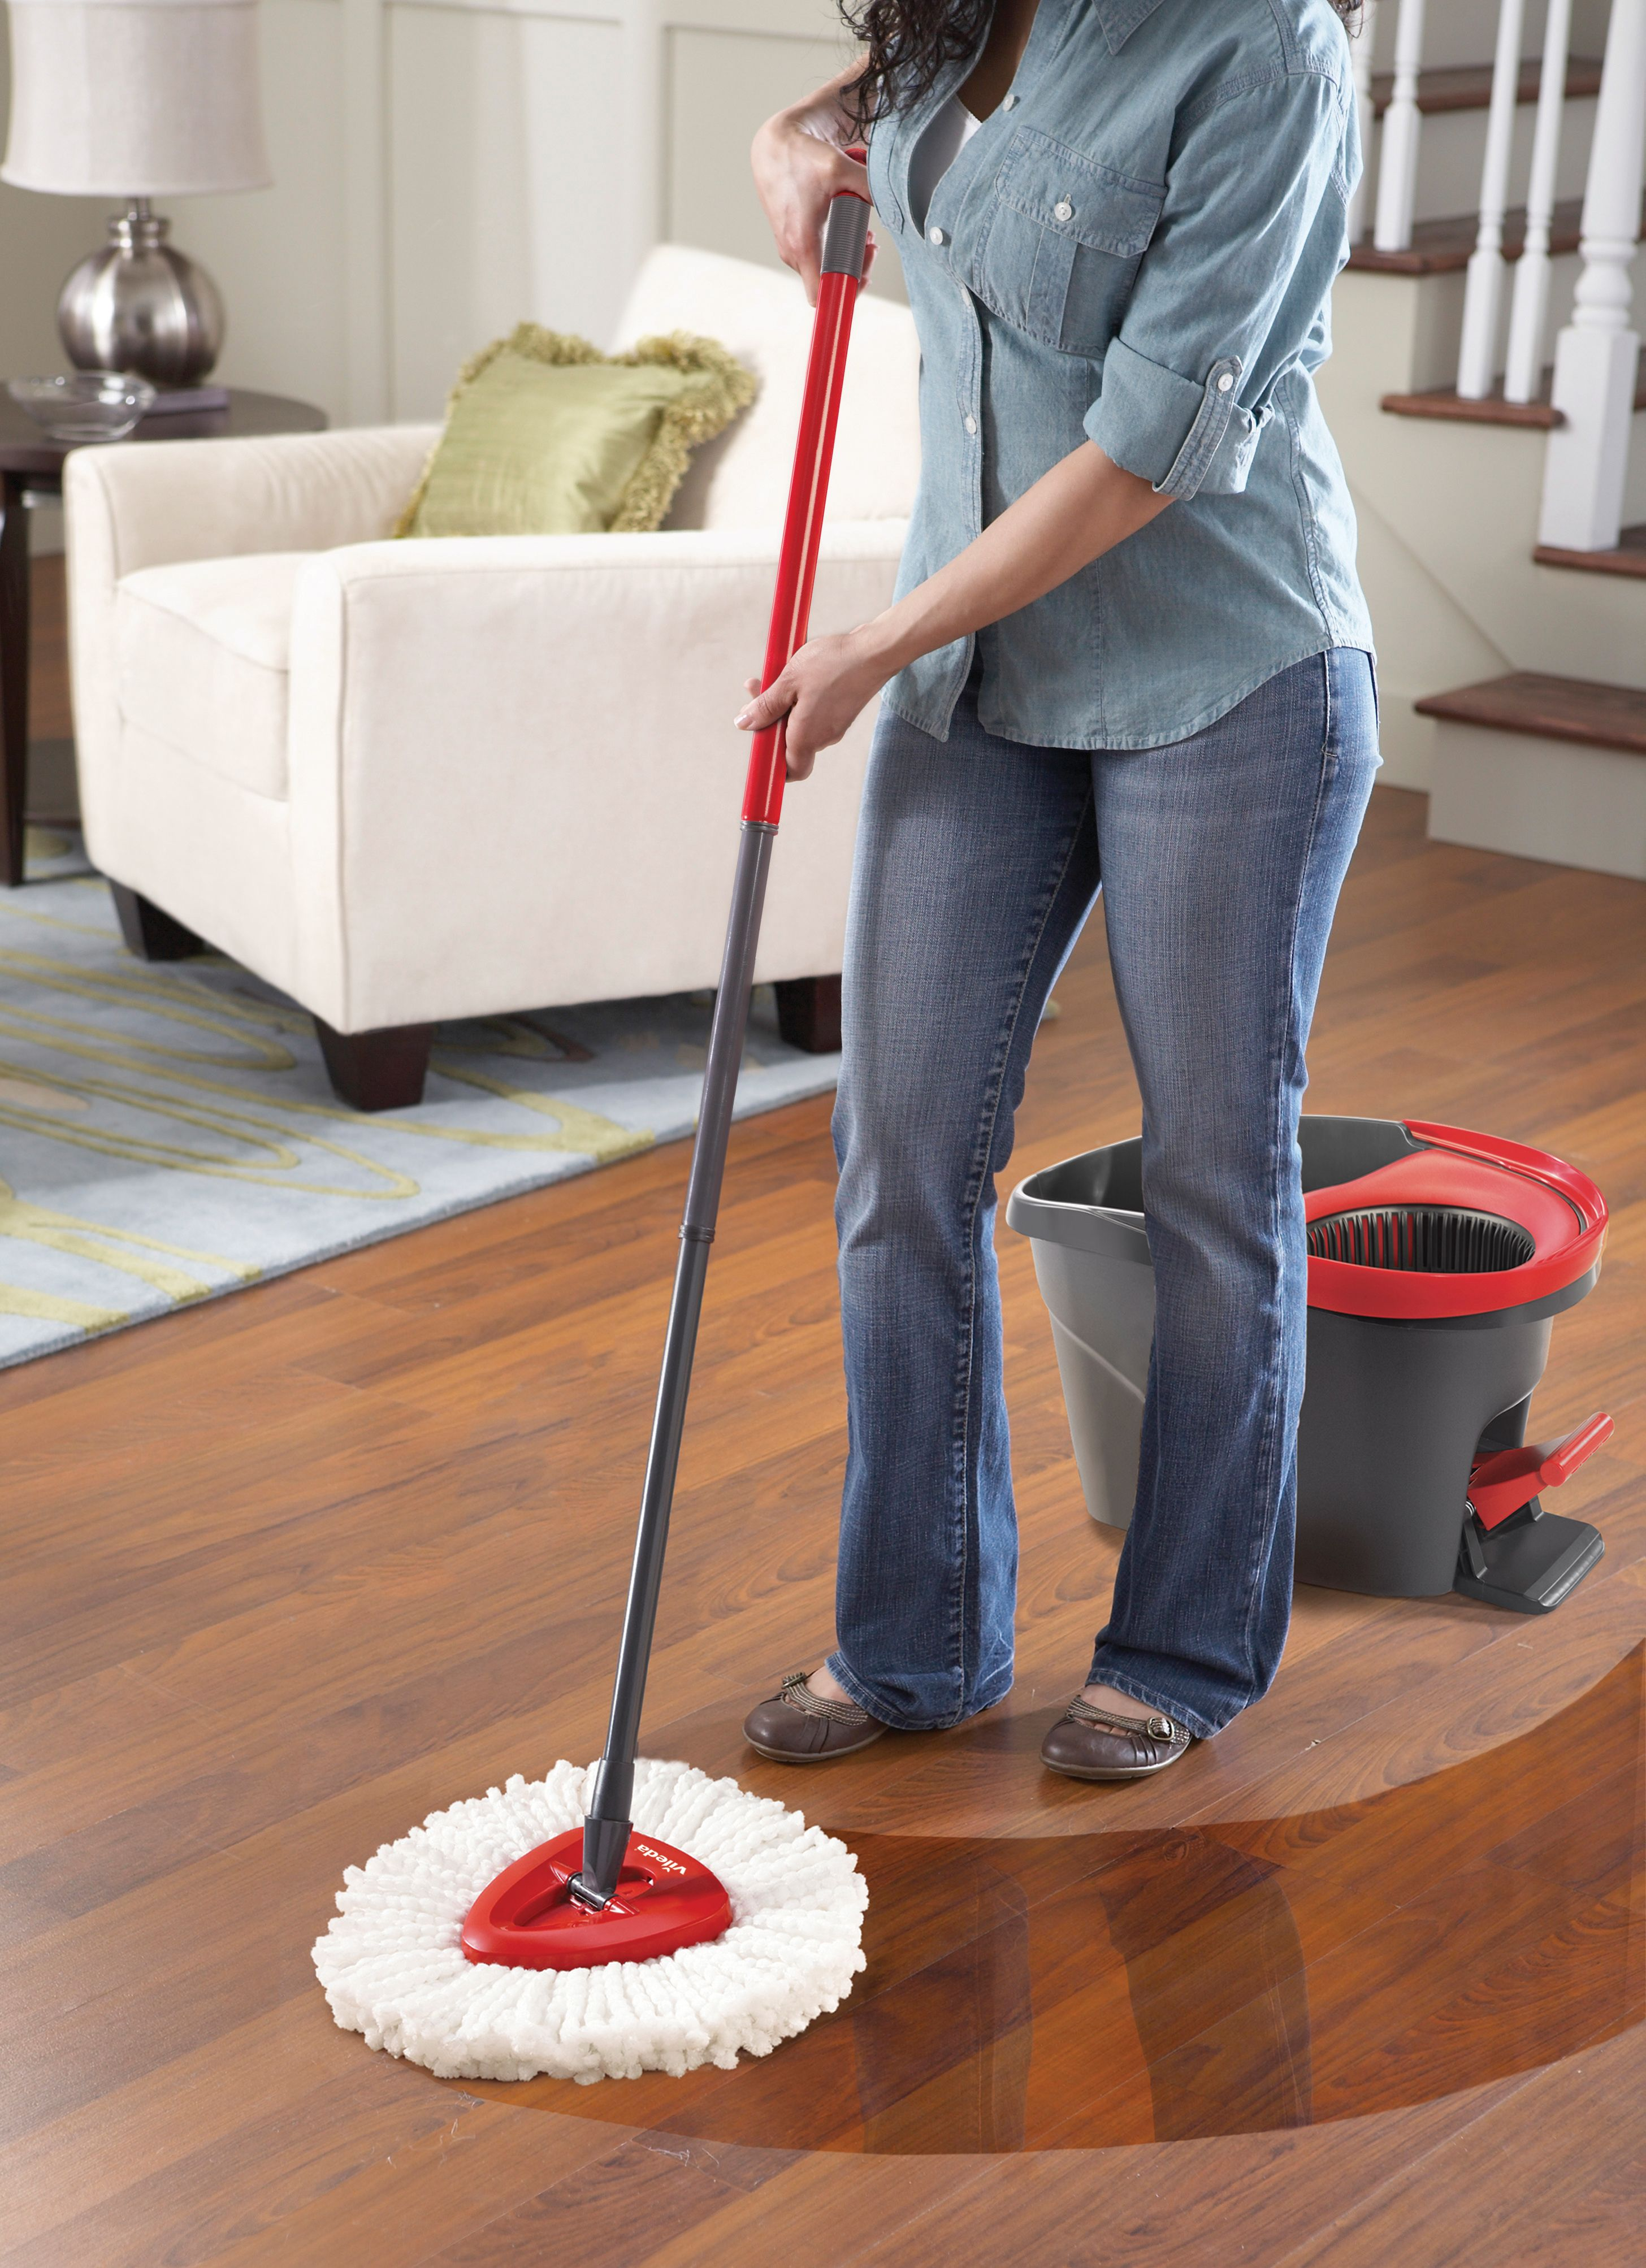 utilities x cleaner floors cross wash cid home kitchen product spin degree blue large improvement magic mop cleaning floor